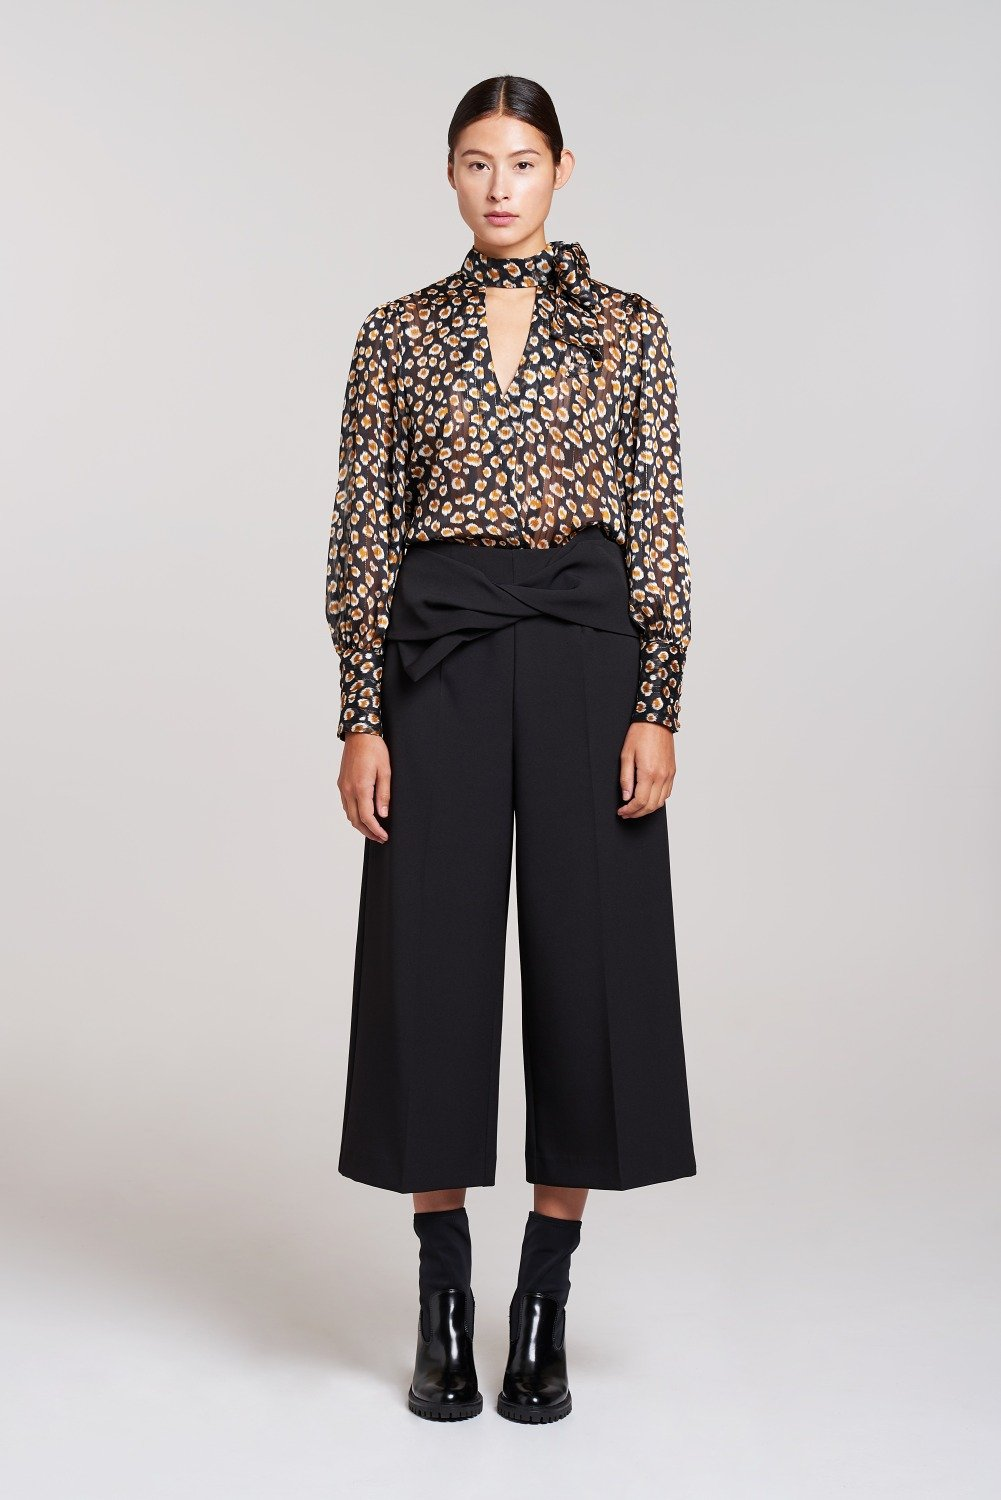 Load image into Gallery viewer, Palones Black Soho Bow Tie Cropped Trouser